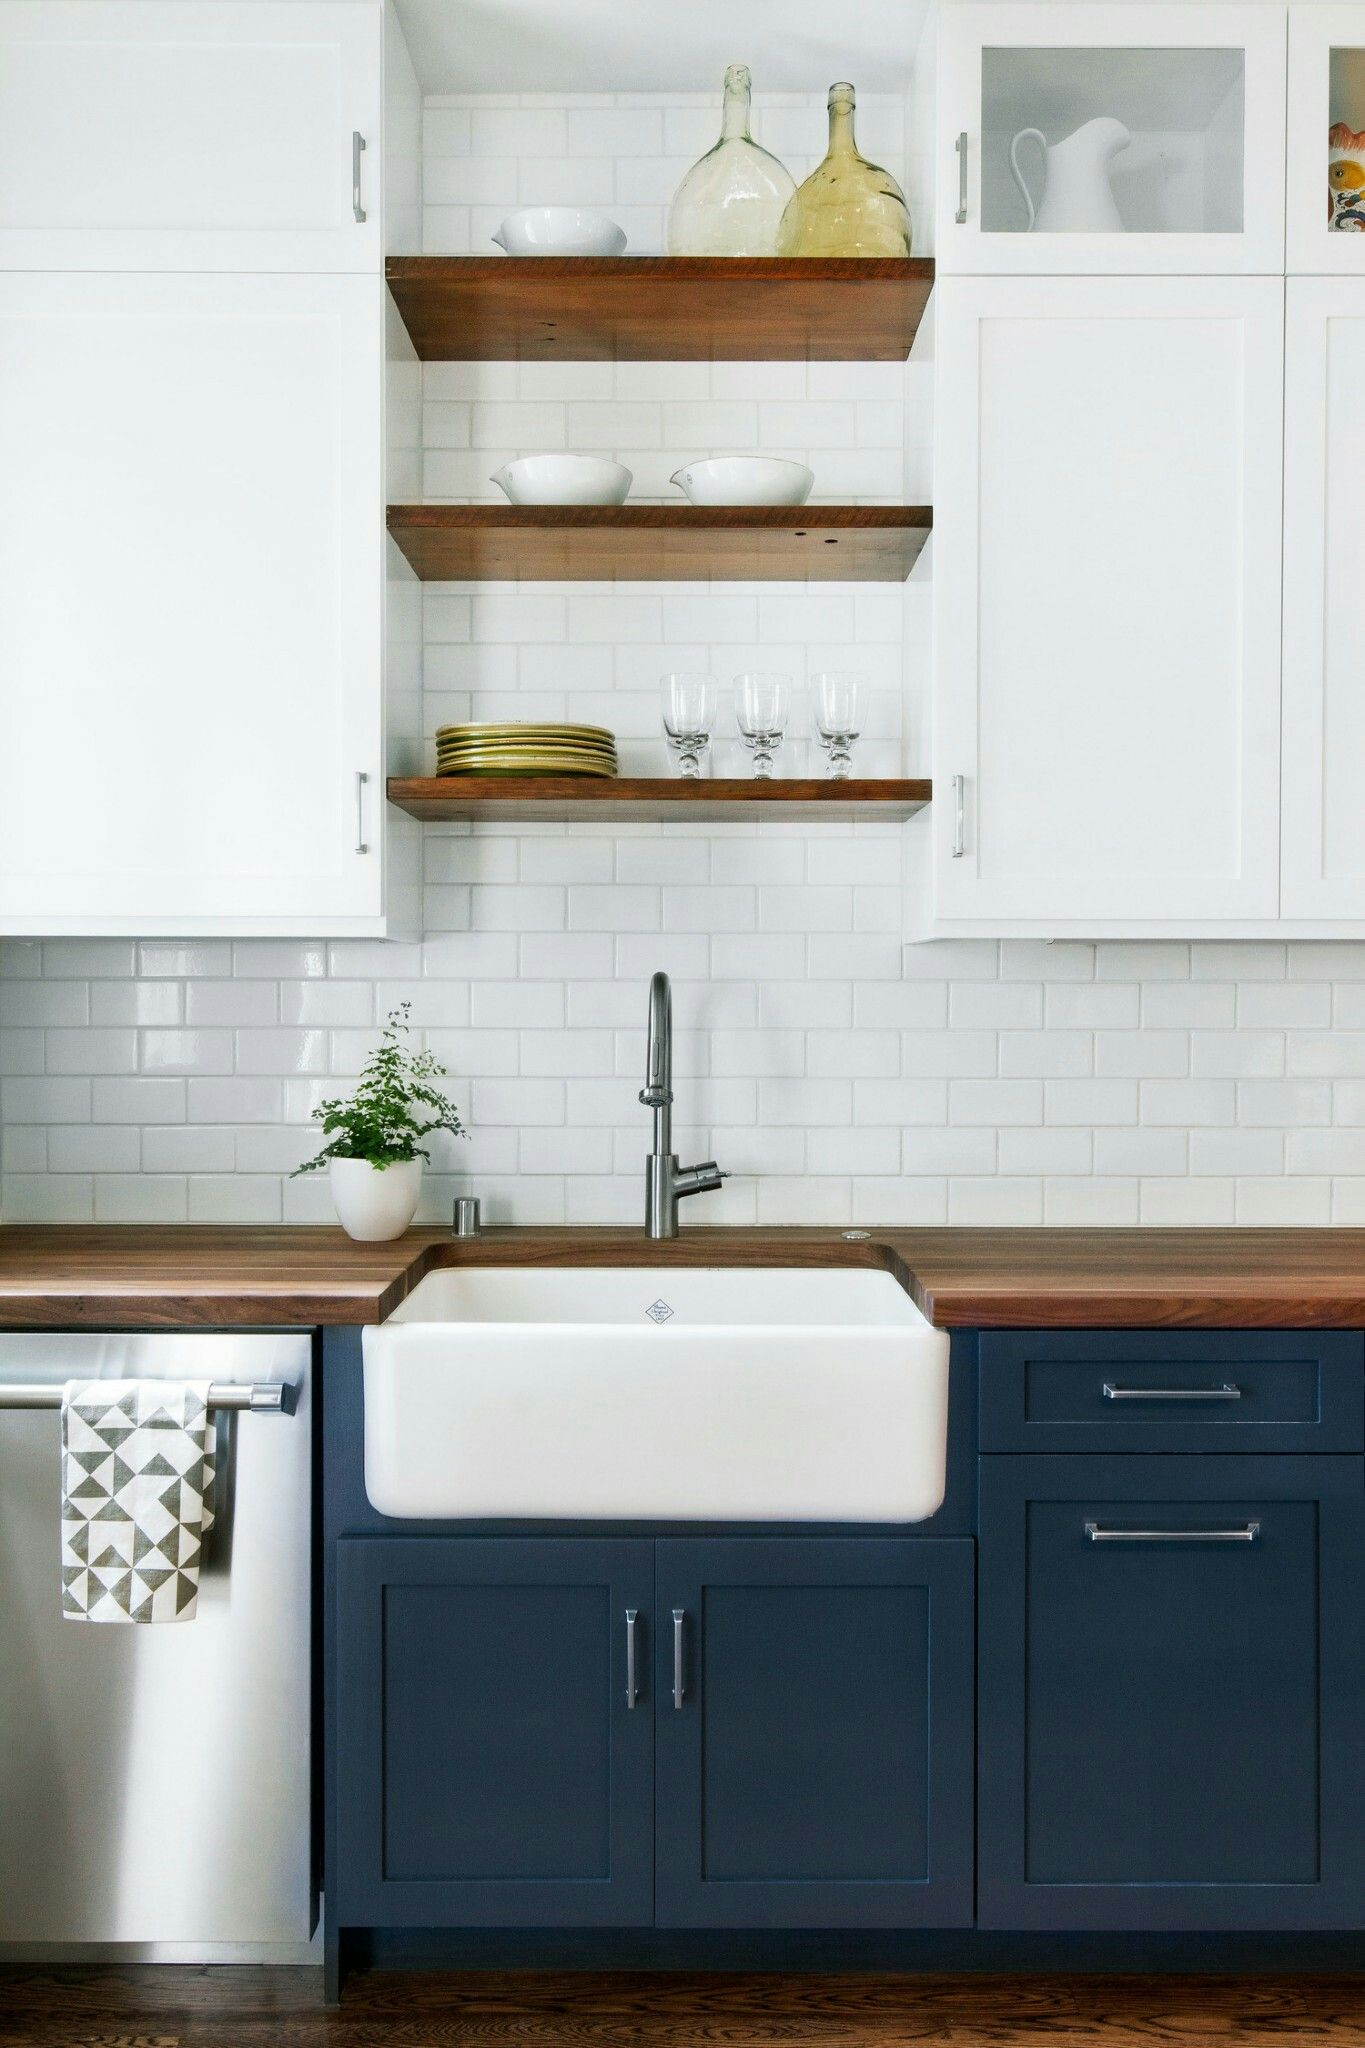 Ambiance Carrelage Saint Leonard blue lowers - white uppers - open shelves - farmhouse sink